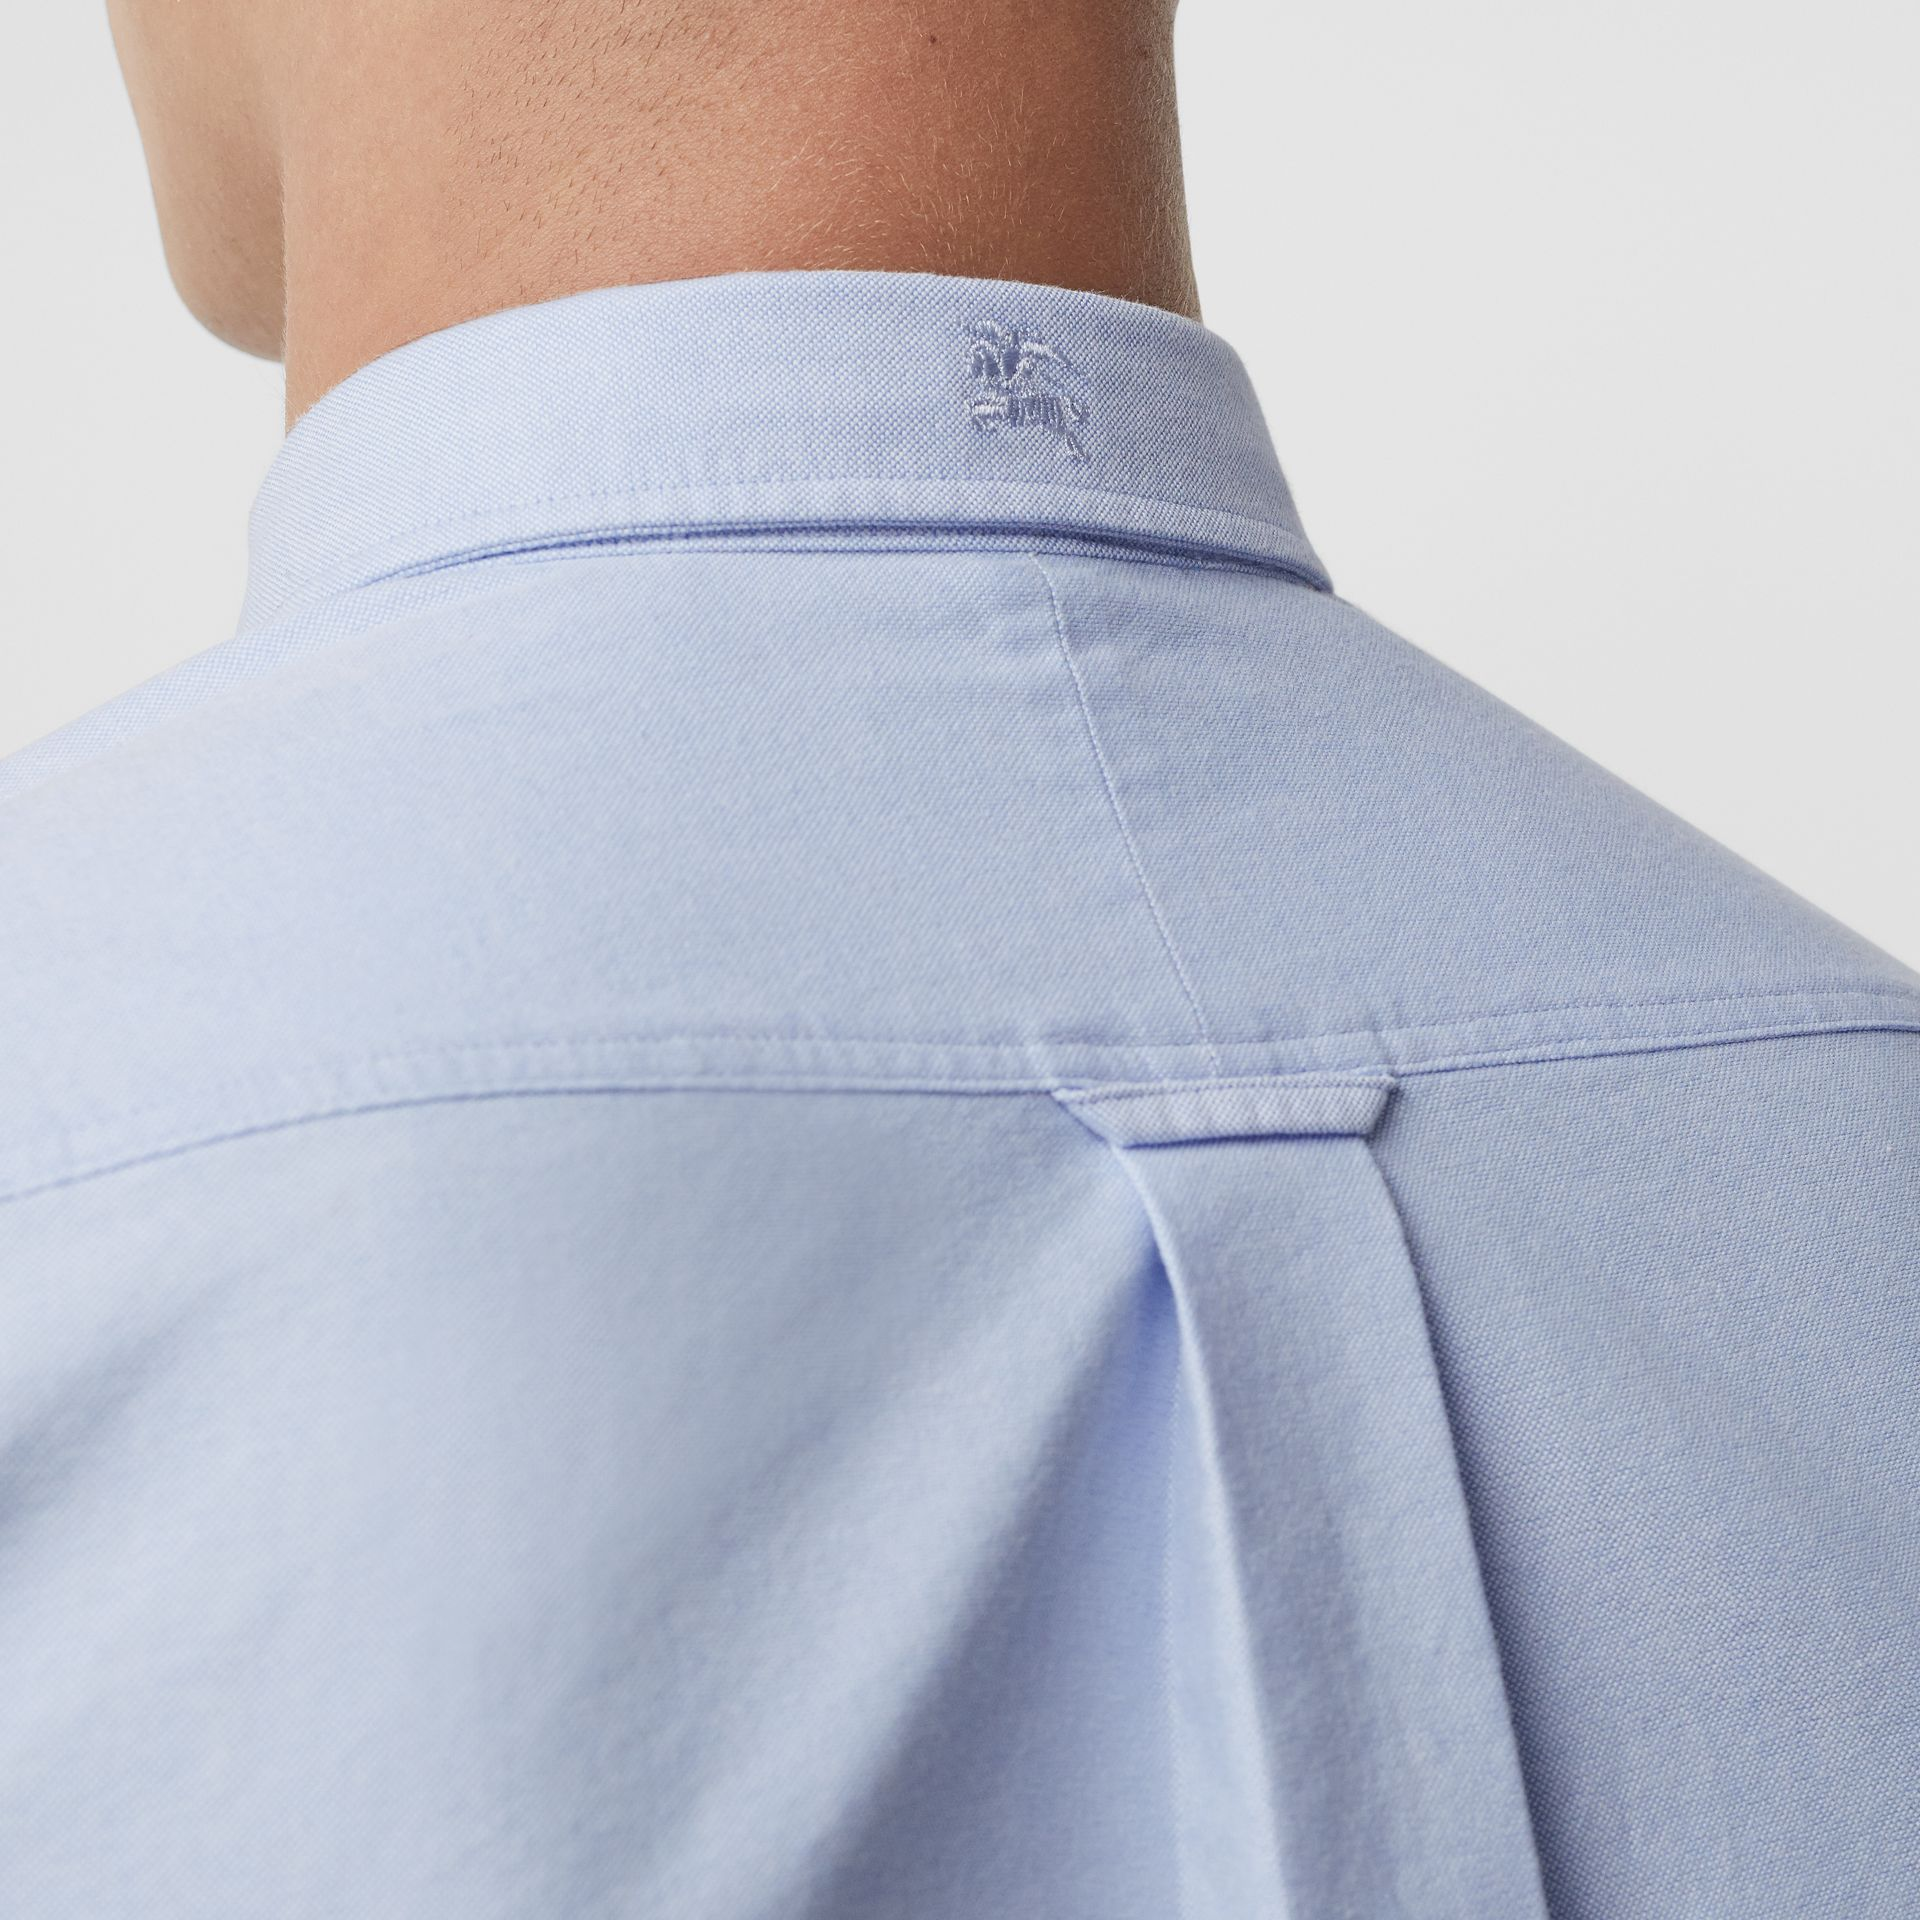 Check Cuff Cotton Oxford Shirt in Cornflower Blue - Men | Burberry United States - gallery image 4